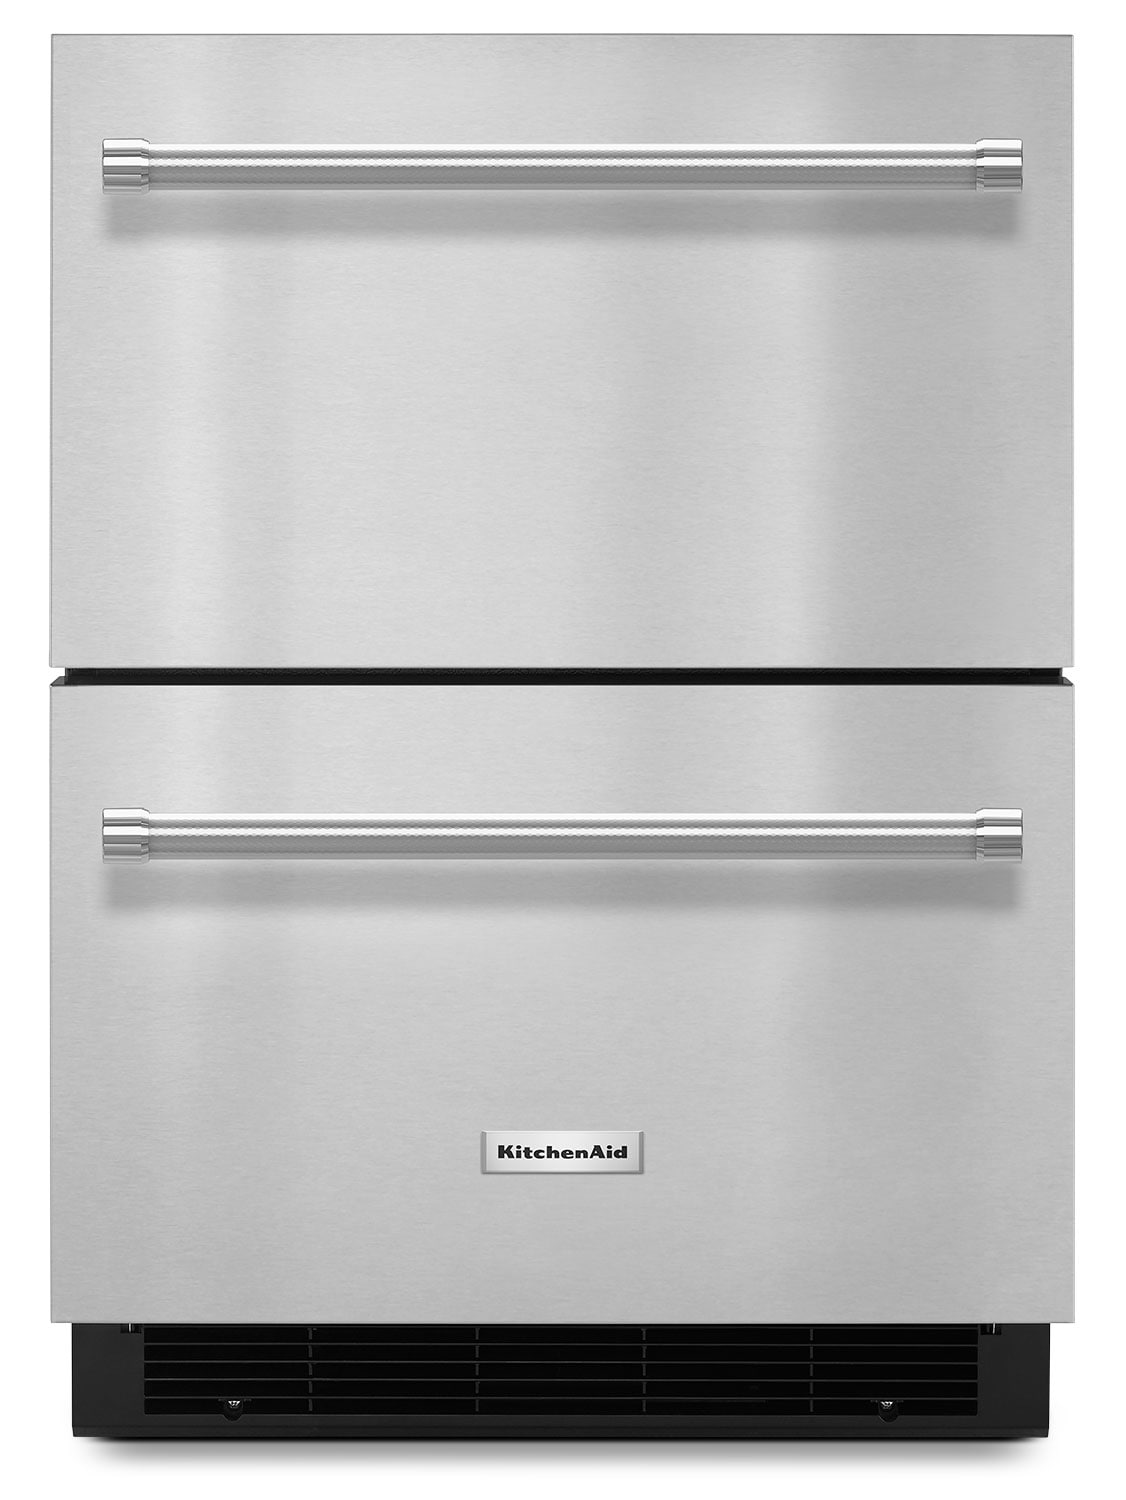 Counter Height Dishwasher Panel Ready Kitchen Aid